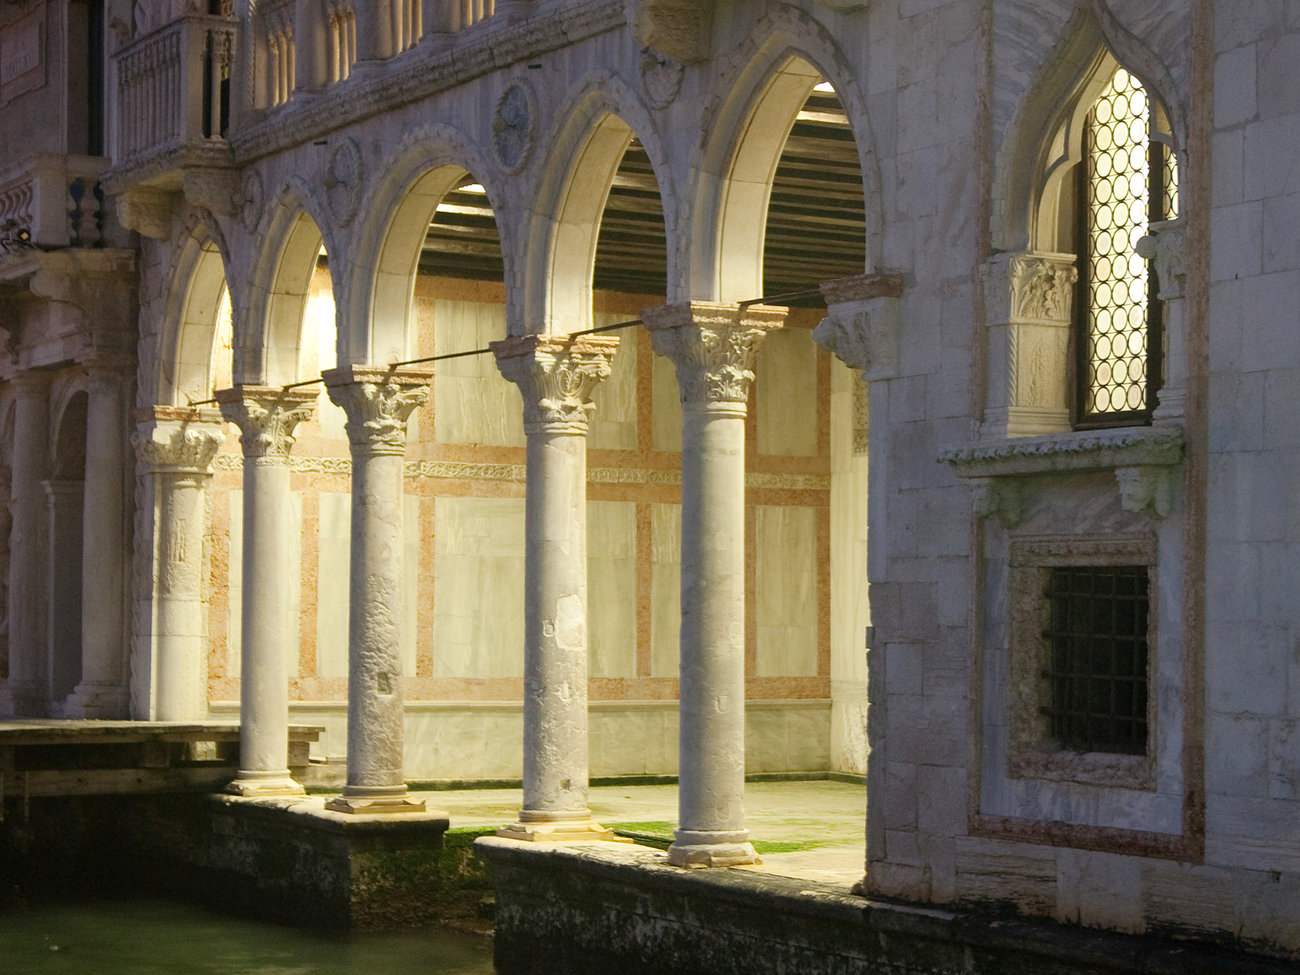 Ca' d'Oro Palace on Grand Canal in Venice